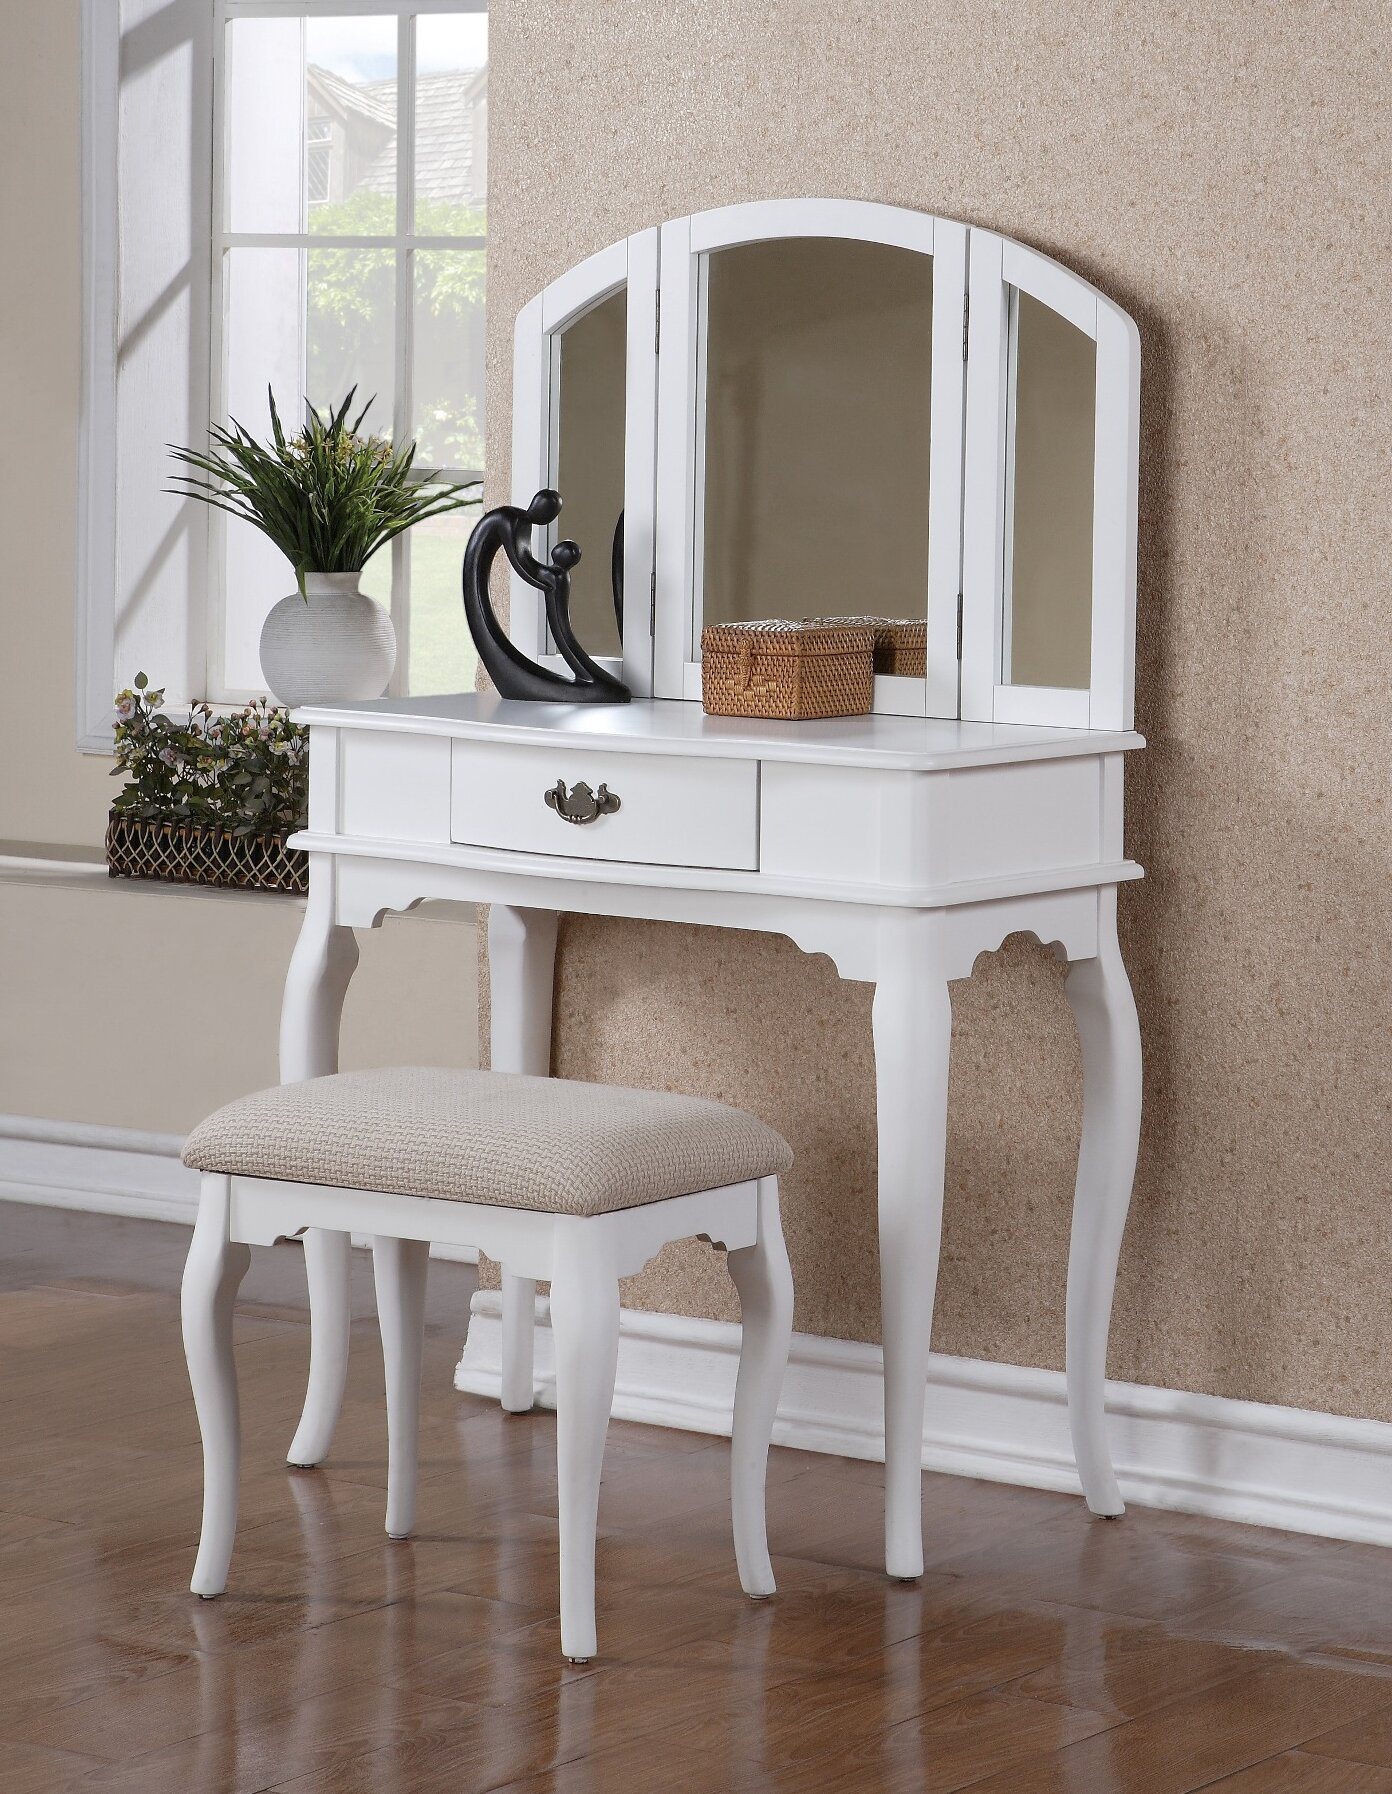 vanity set table stool chair cosmetic makeup dresser 3 pc bedroom